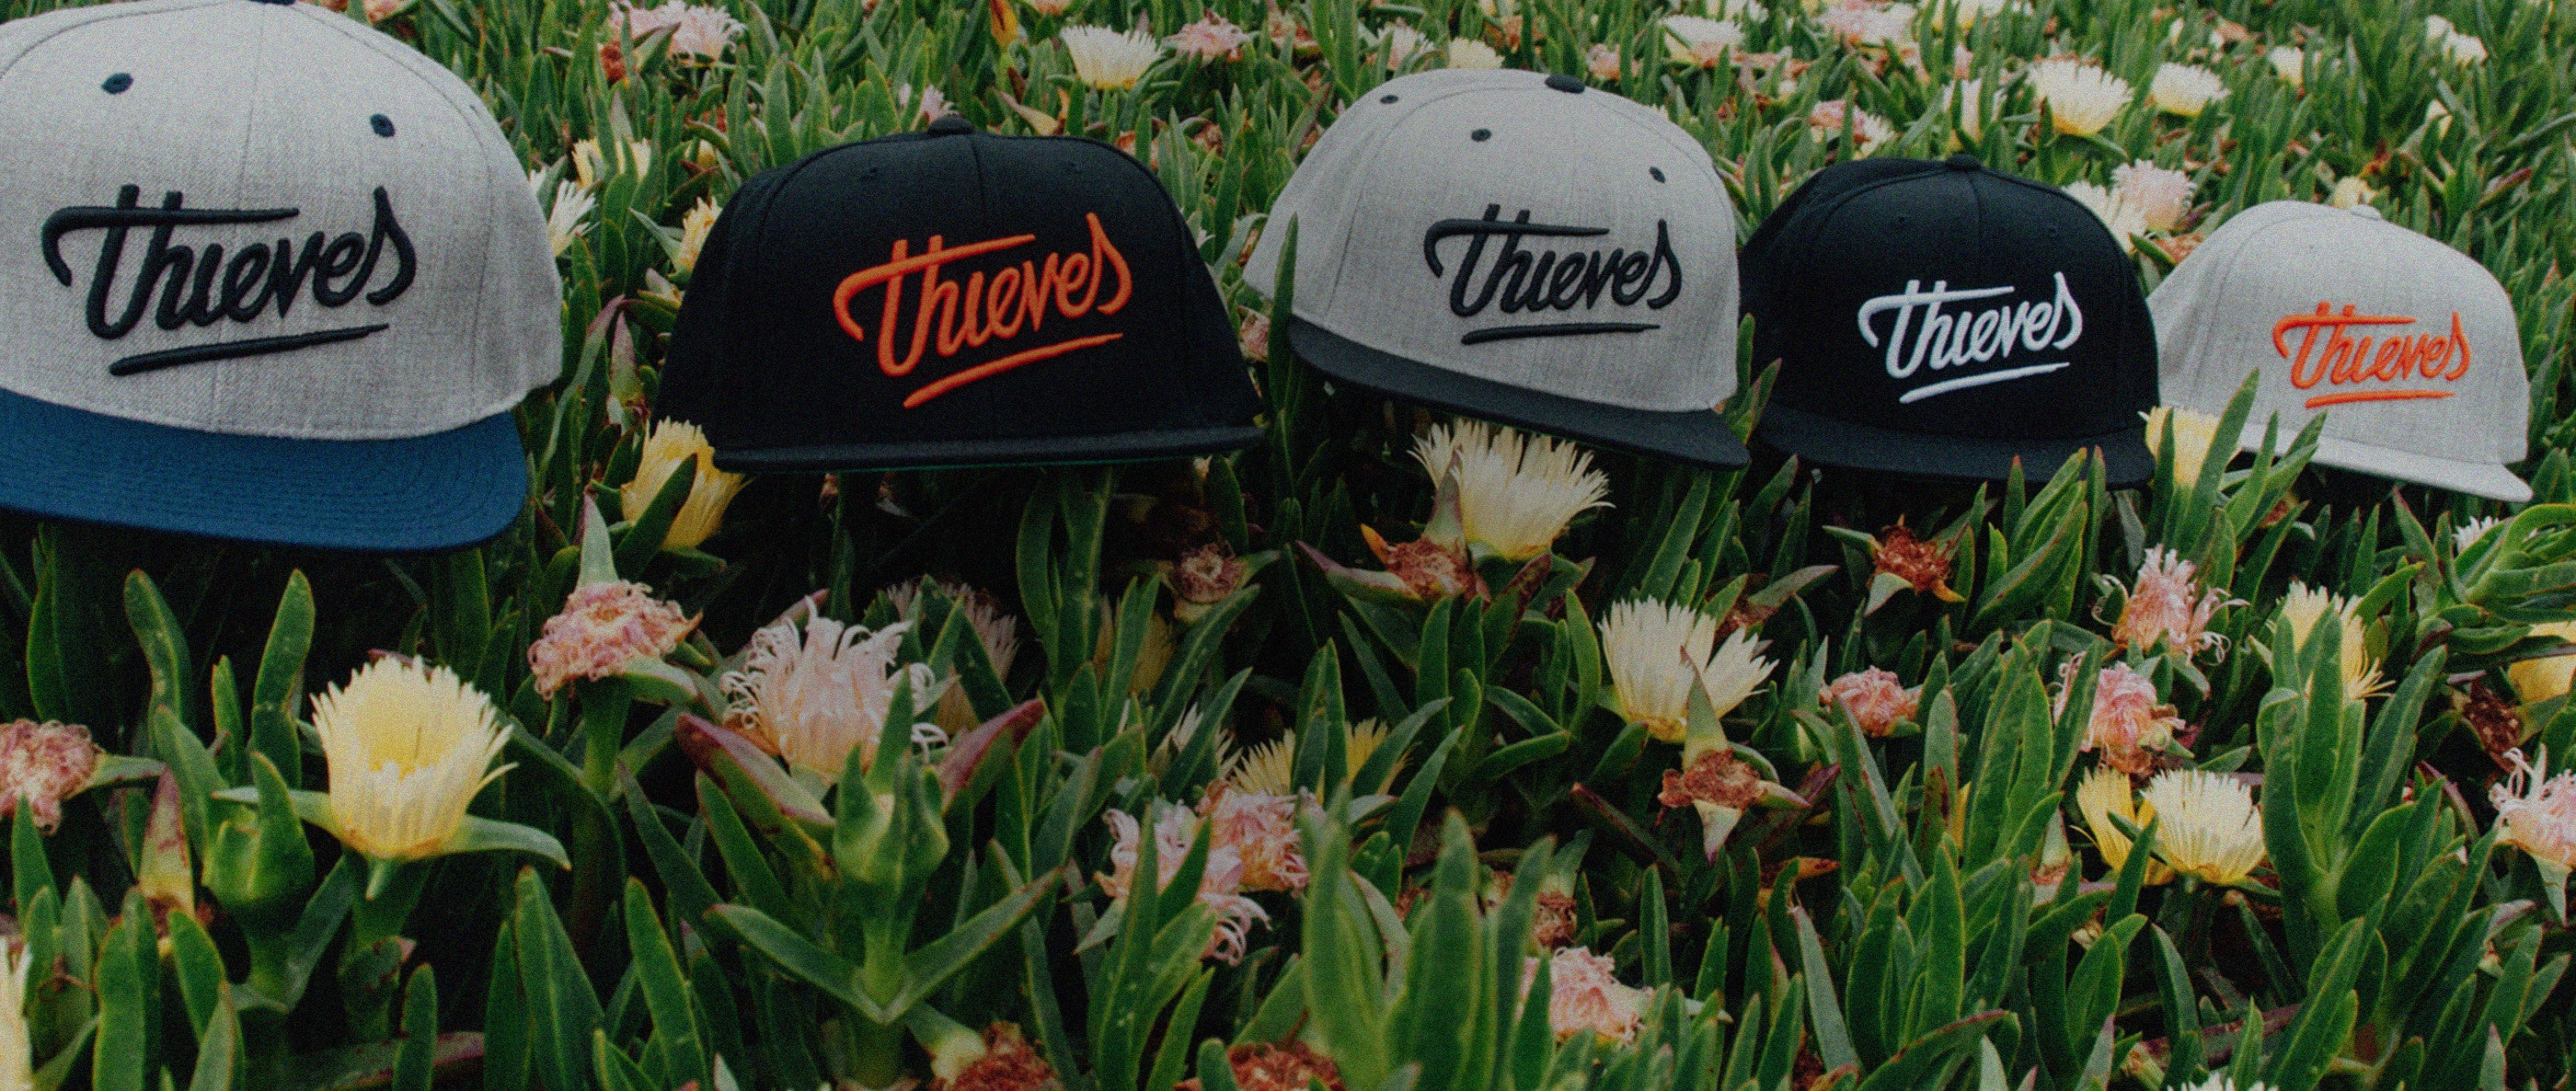 Thieves Co. Santa Cruz, California